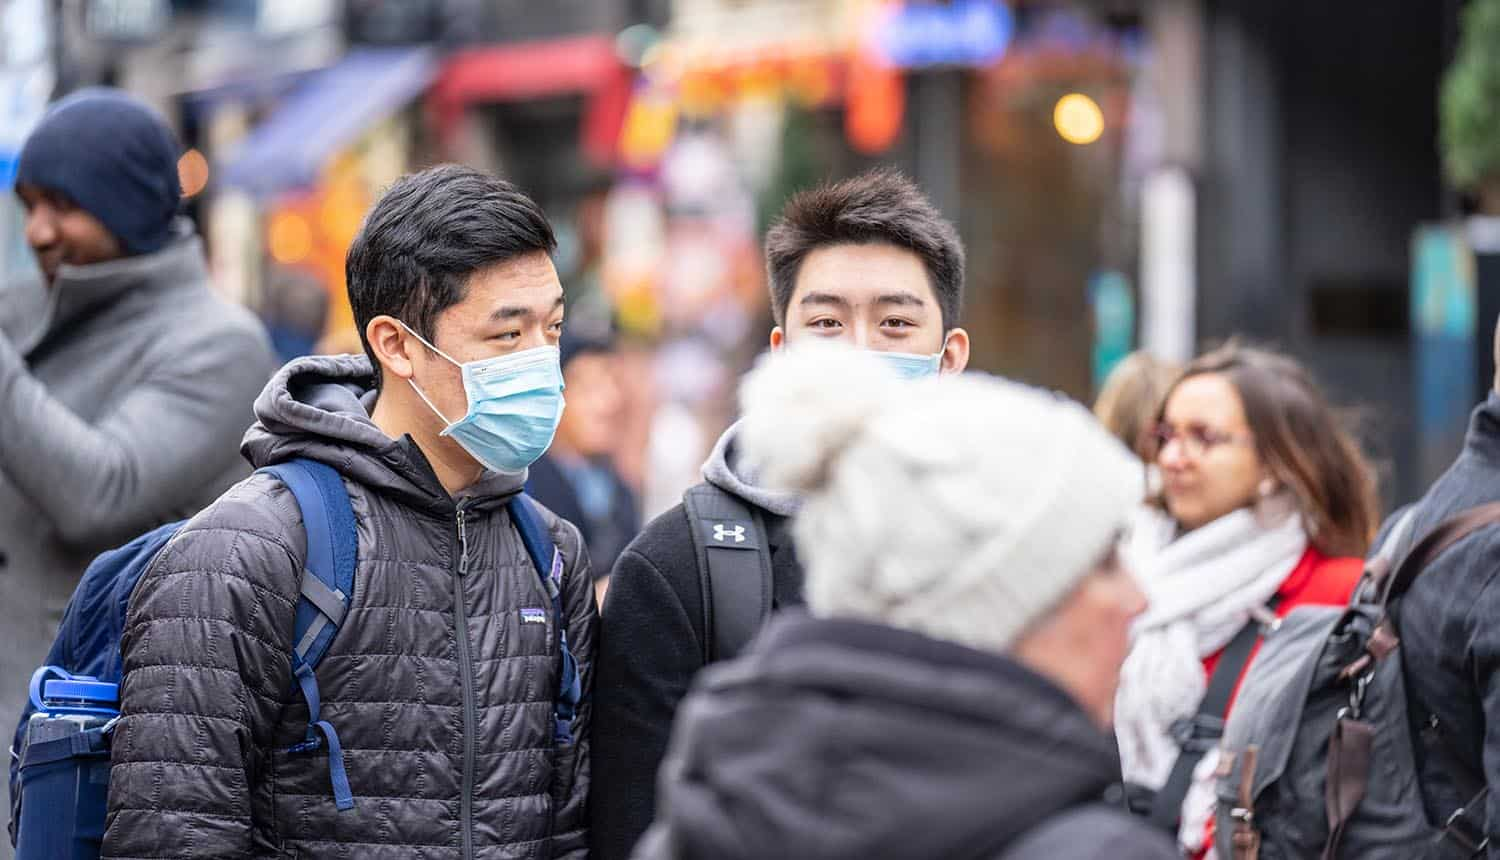 People wearing face masks on street showing the challenge to collect and handle health data under GDPR to combat coronavirus outbreak